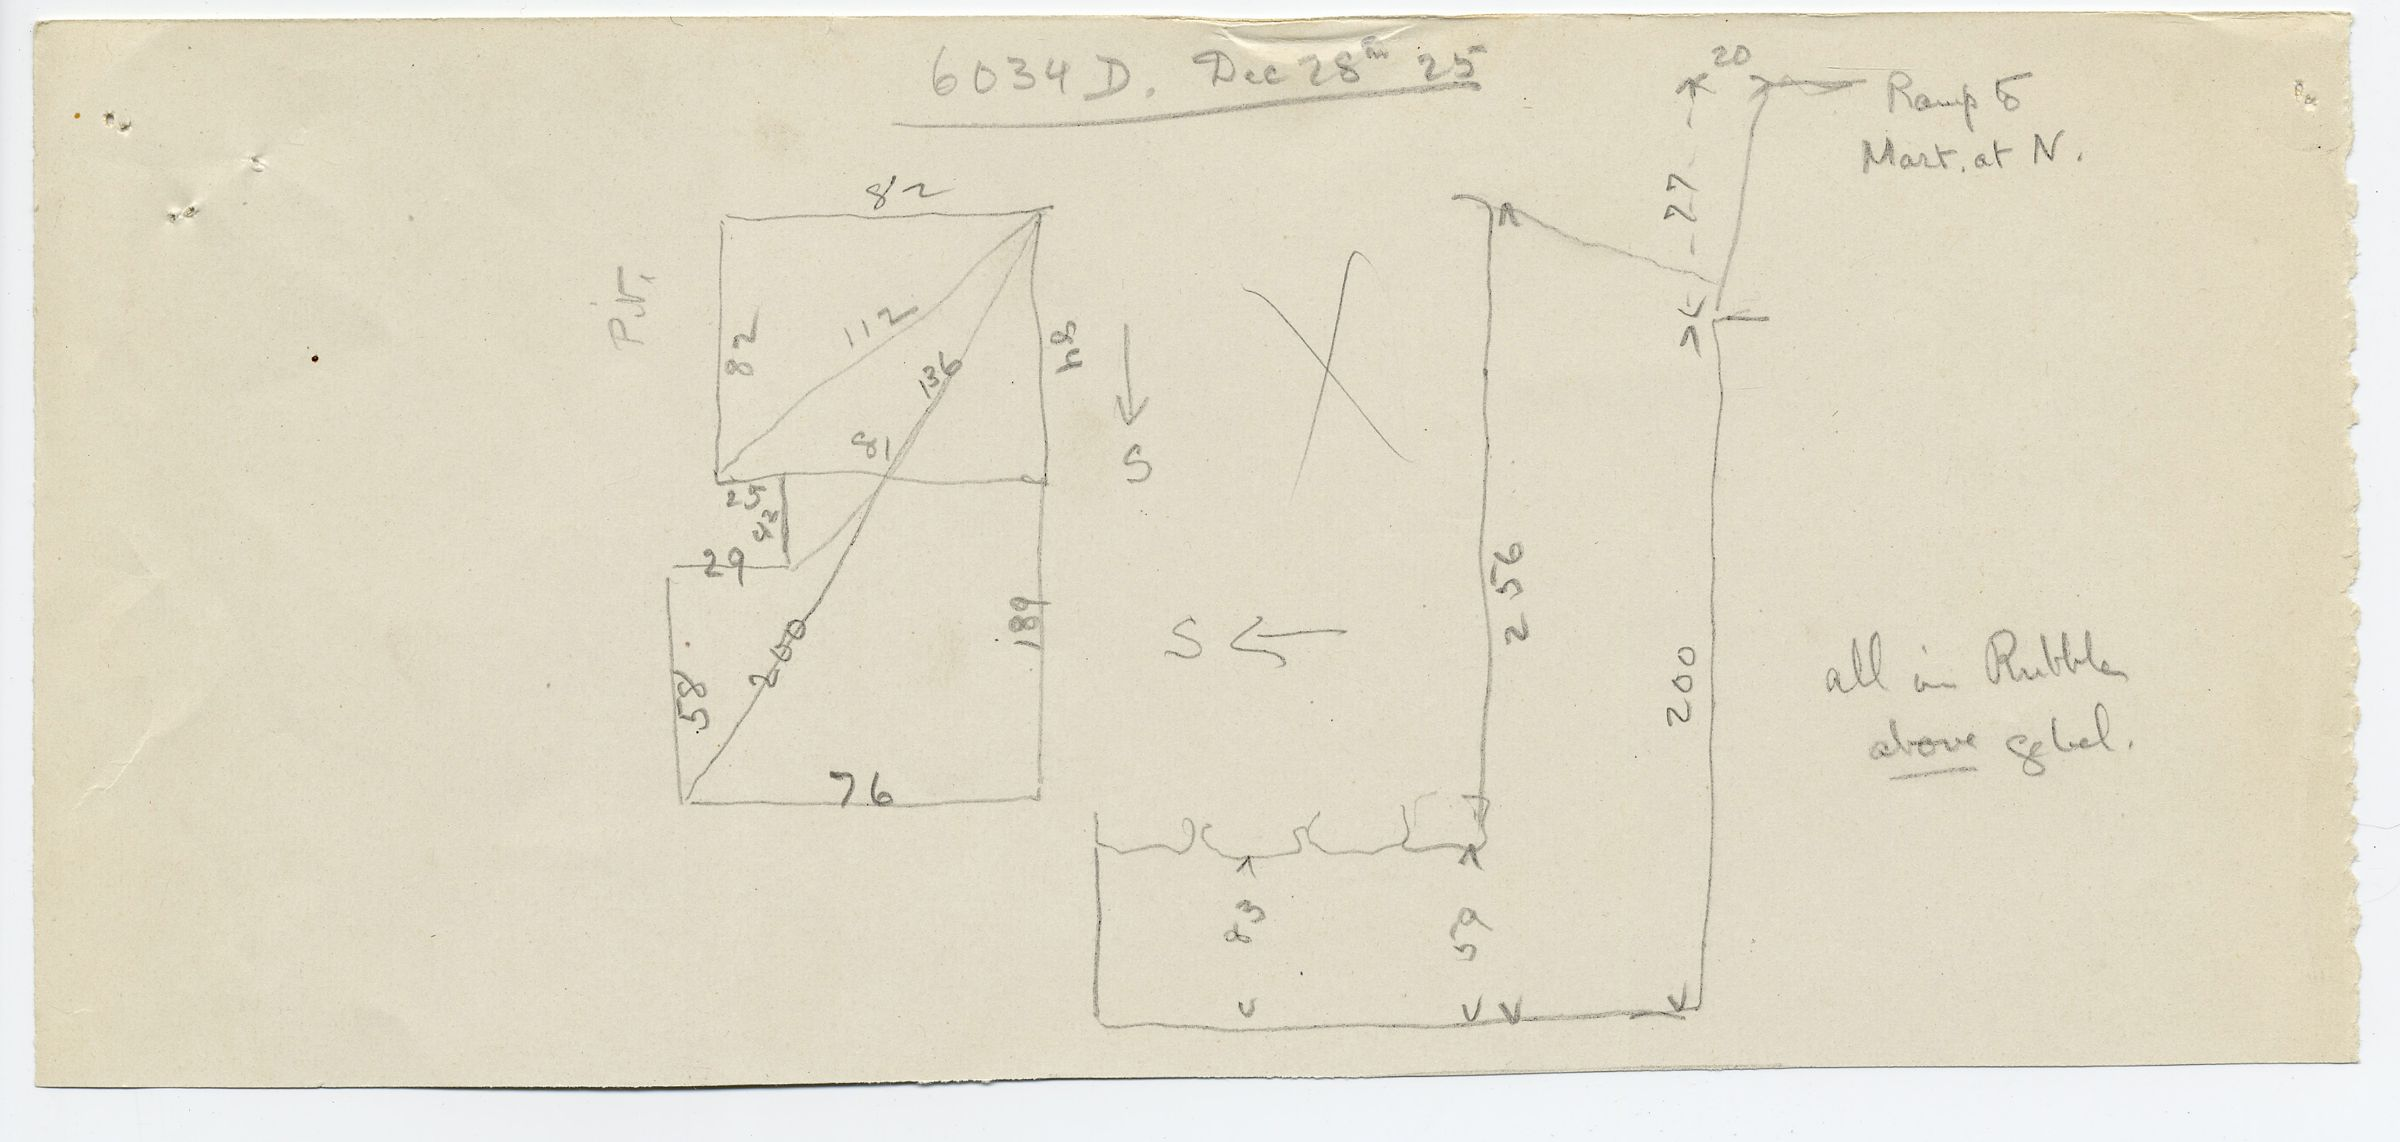 Maps and plans: G 6034, Shaft D